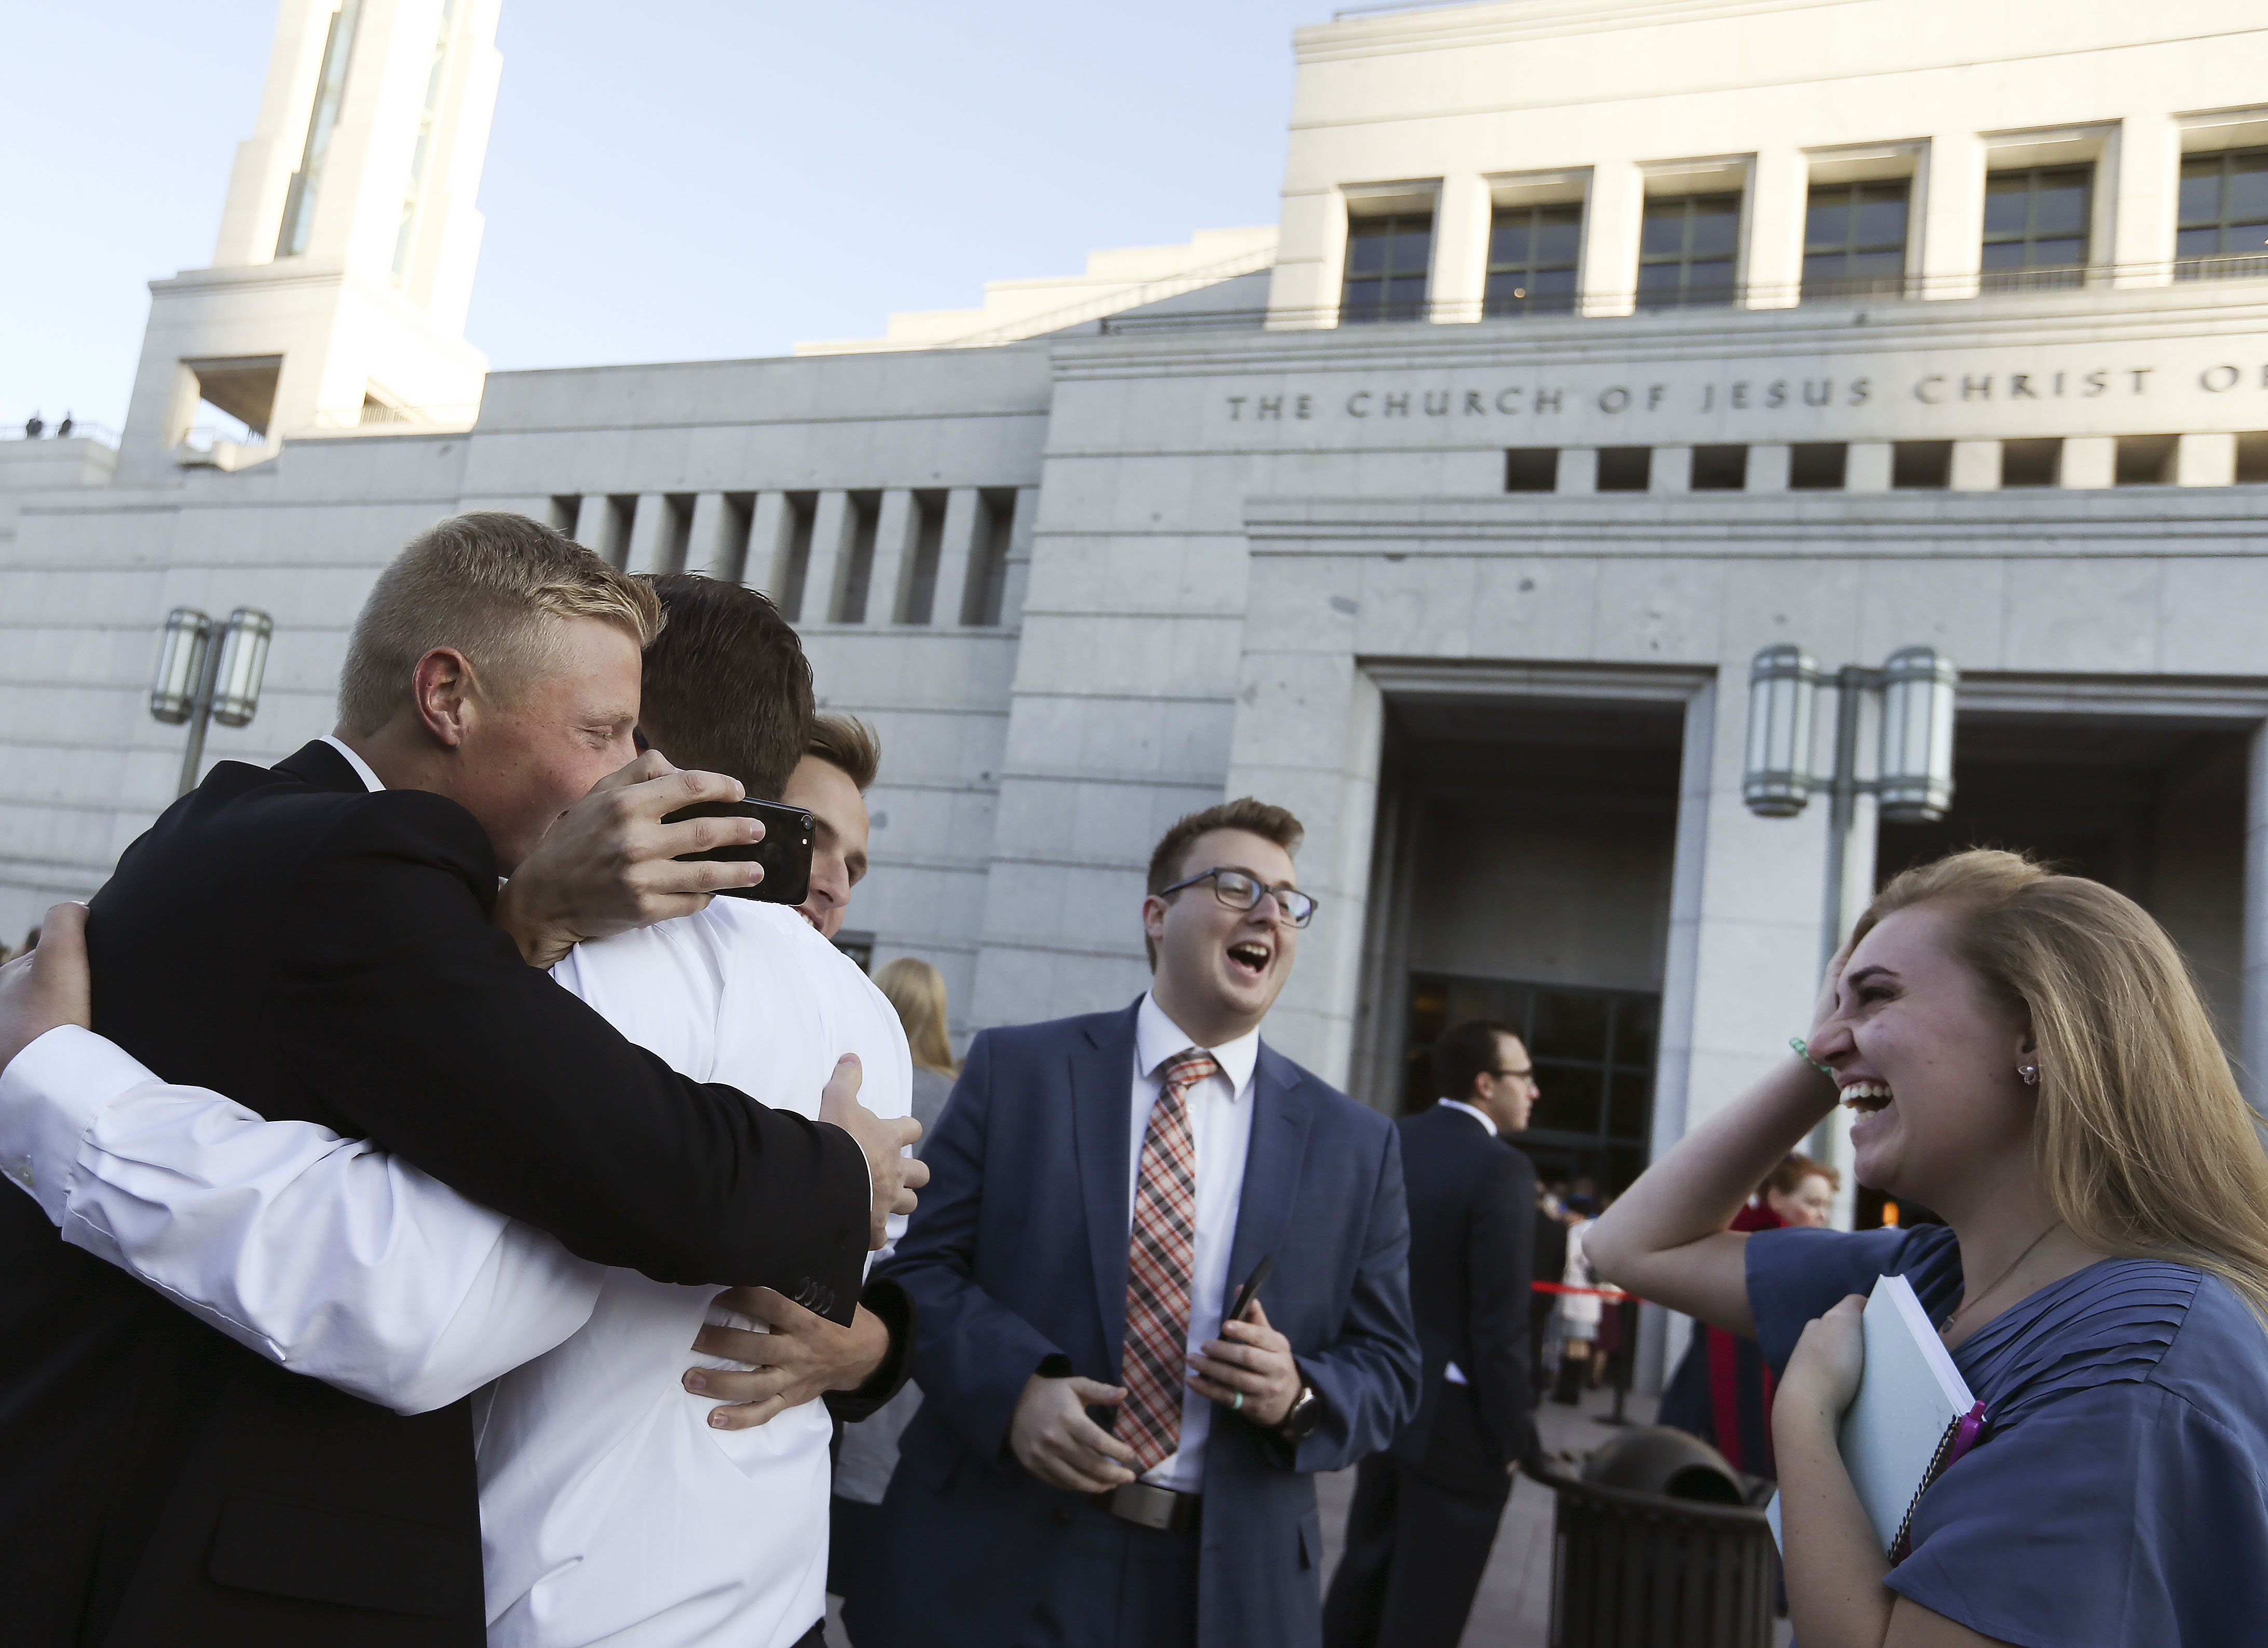 Friends greet one another before the Sunday morning session of the 189th Semiannual General Conference of The Church of Jesus Christ of Latter-day Saints at the Conference Center in Salt Lake City on Sunday, Oct. 6, 2019.